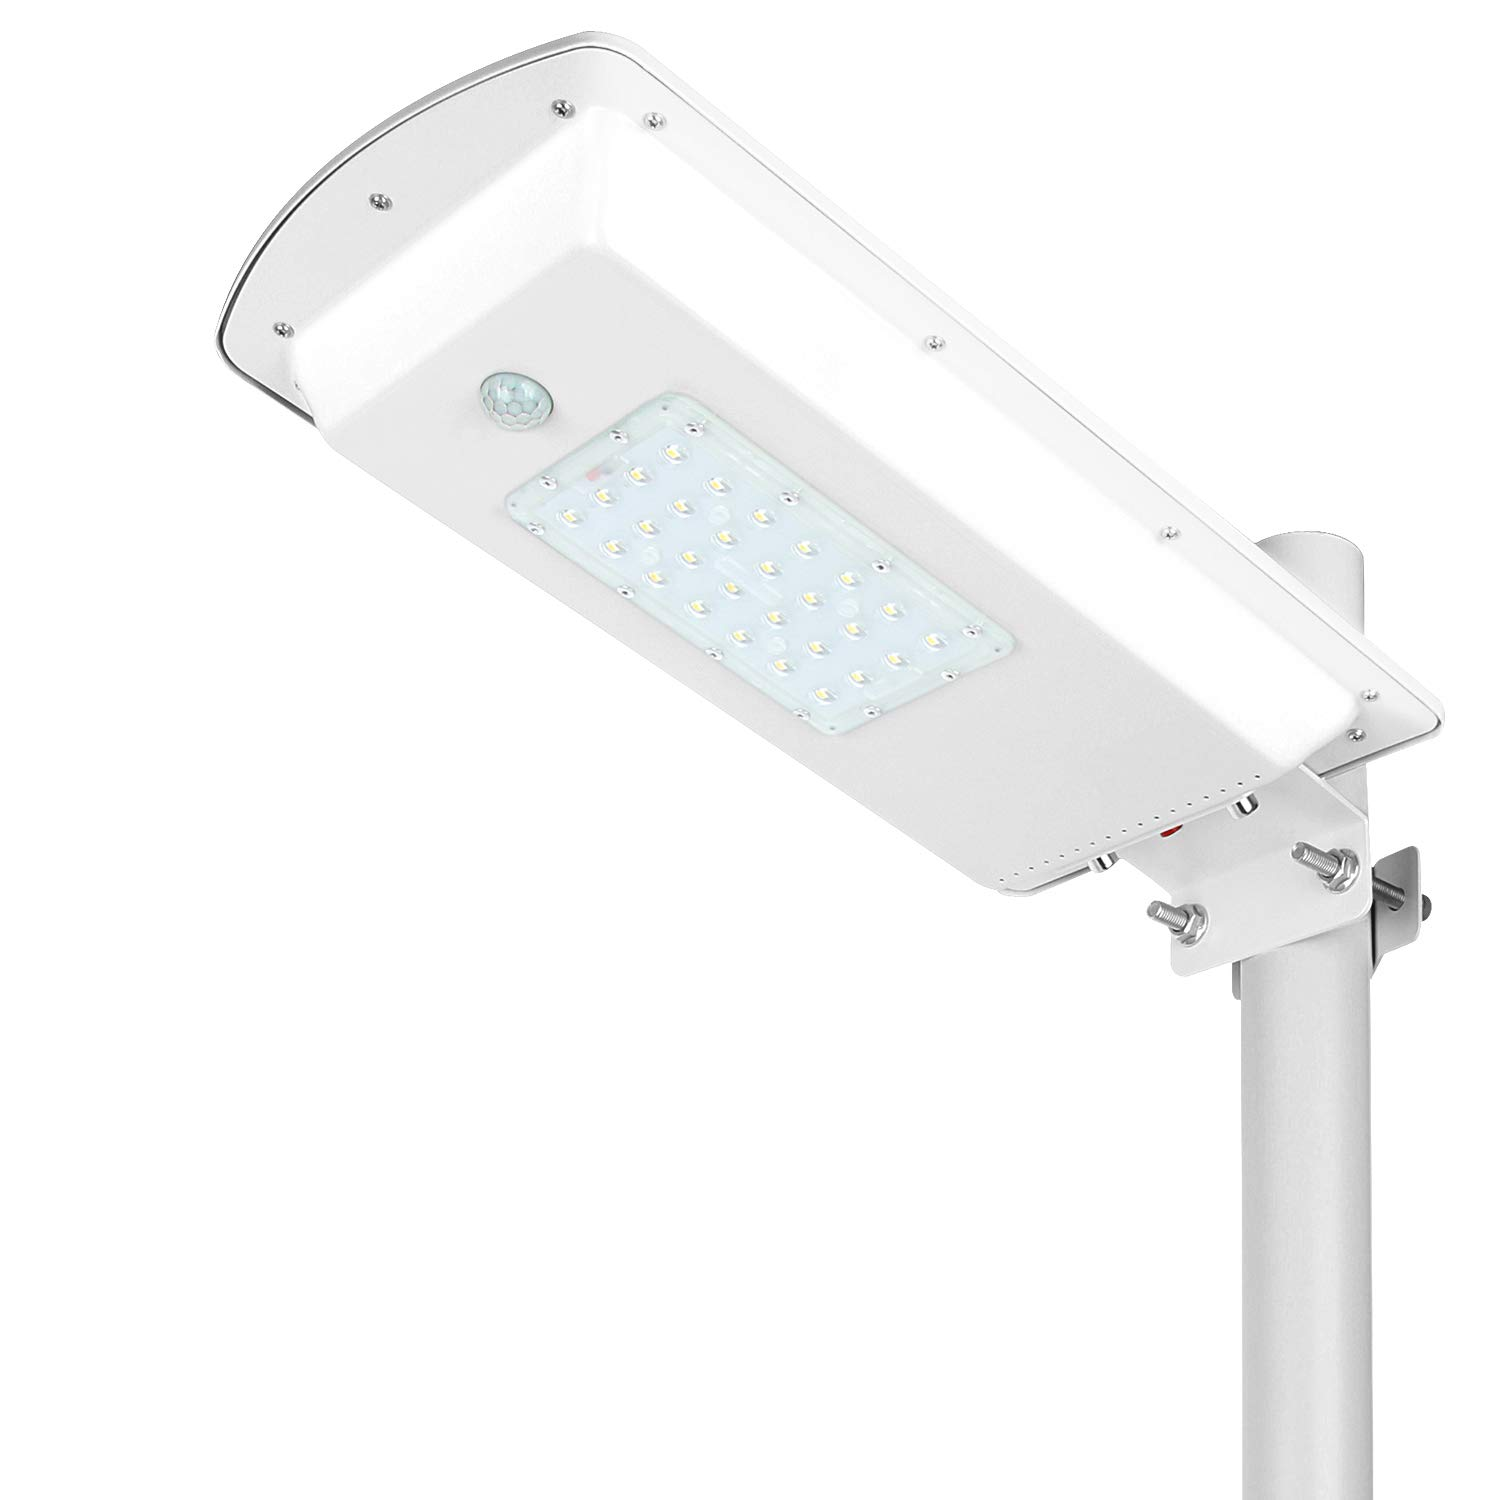 TENKOO Solar Street Lights Dusk to Dawn 1500LM-13200mAH Lithium Battery PIR Motion/Light Sensor No Wire Waterproof IP65 Outdoor Commercial Street Lighting Fixture for Parks/Garages/Path Lighting